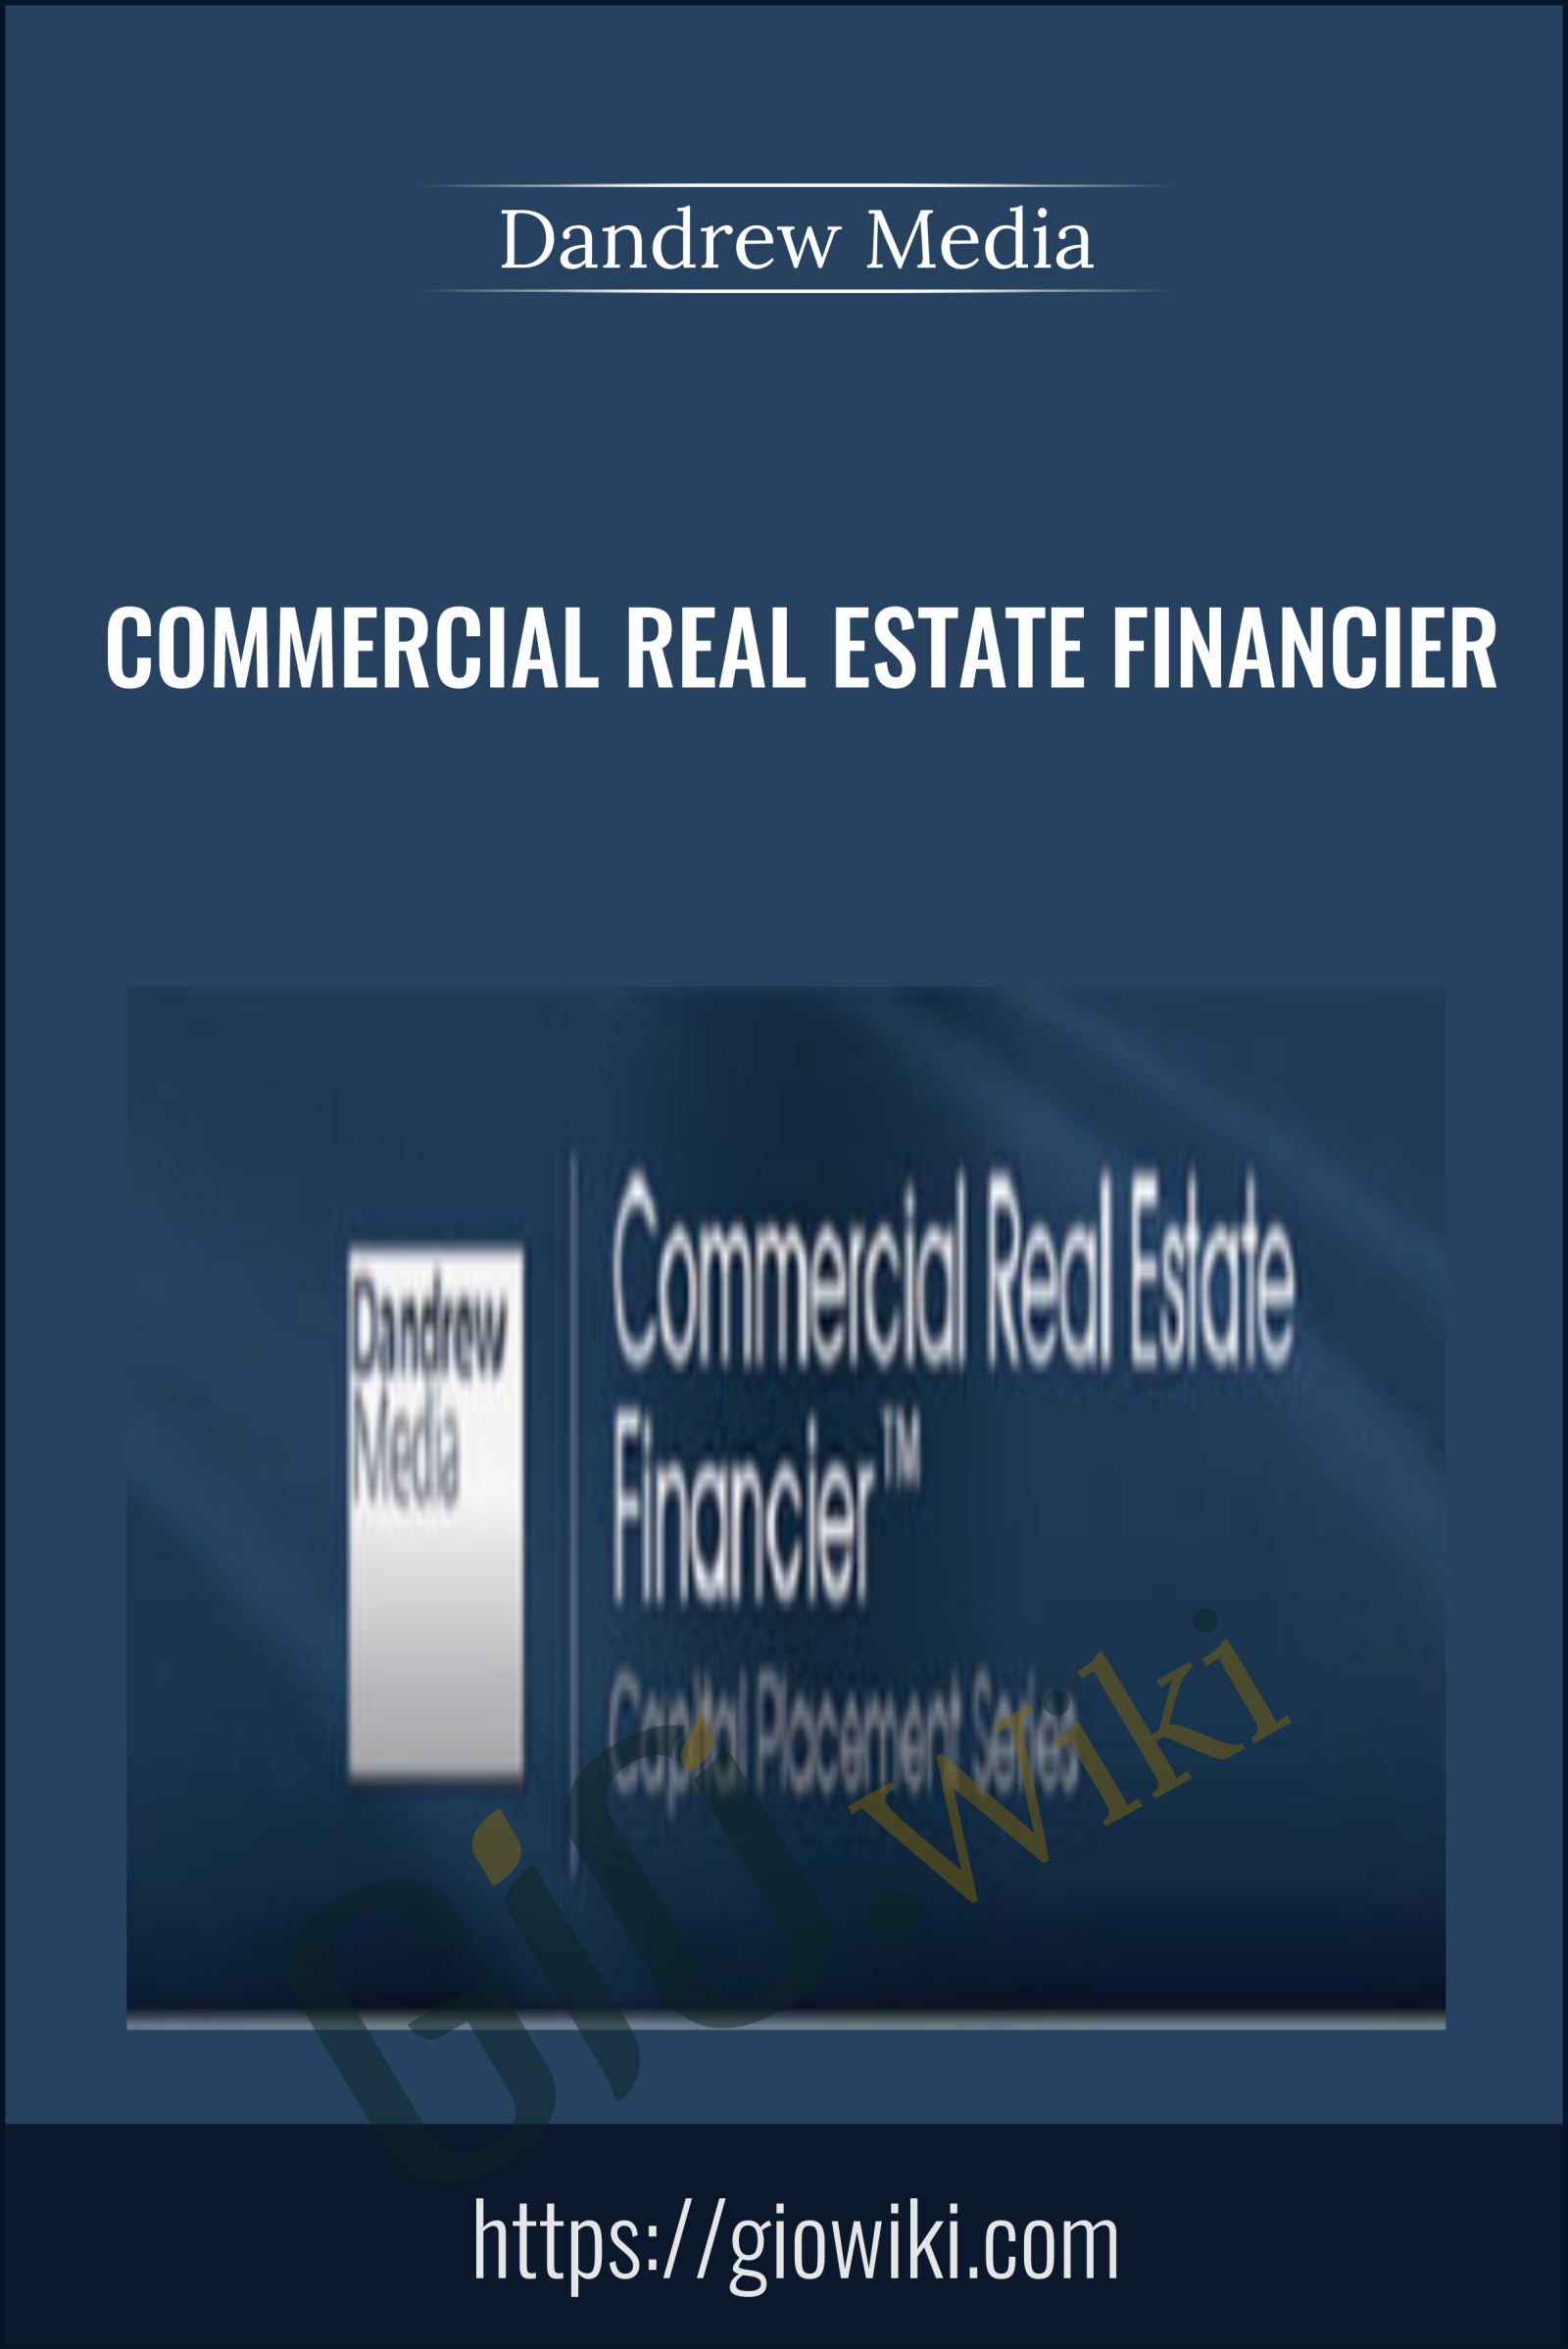 Commercial Real Estate Financier – Dandrew Media